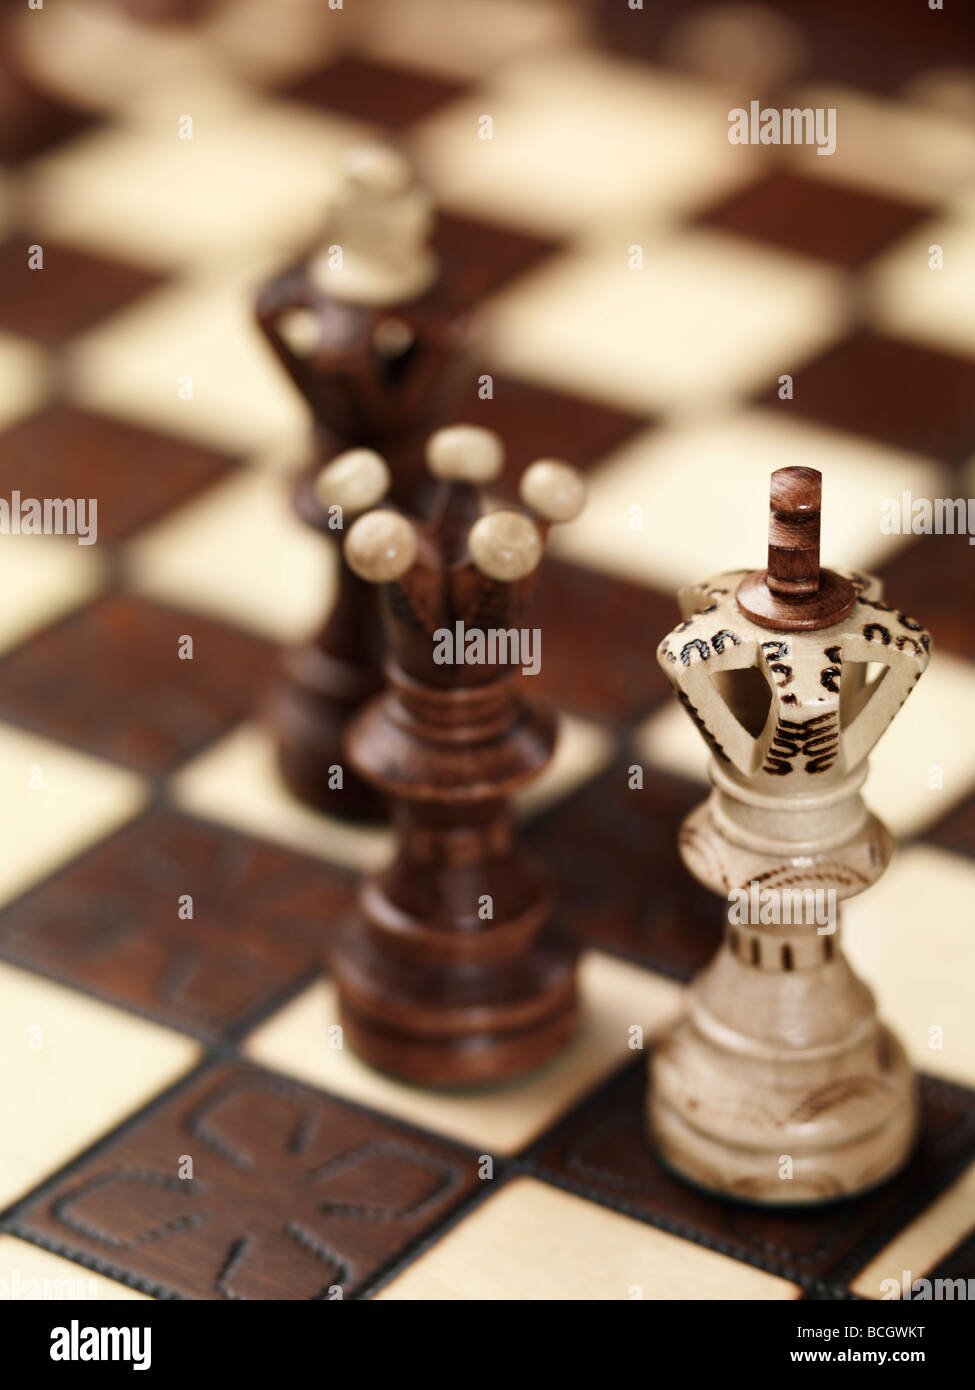 Checkmate situation on a chessboard - Stock Image